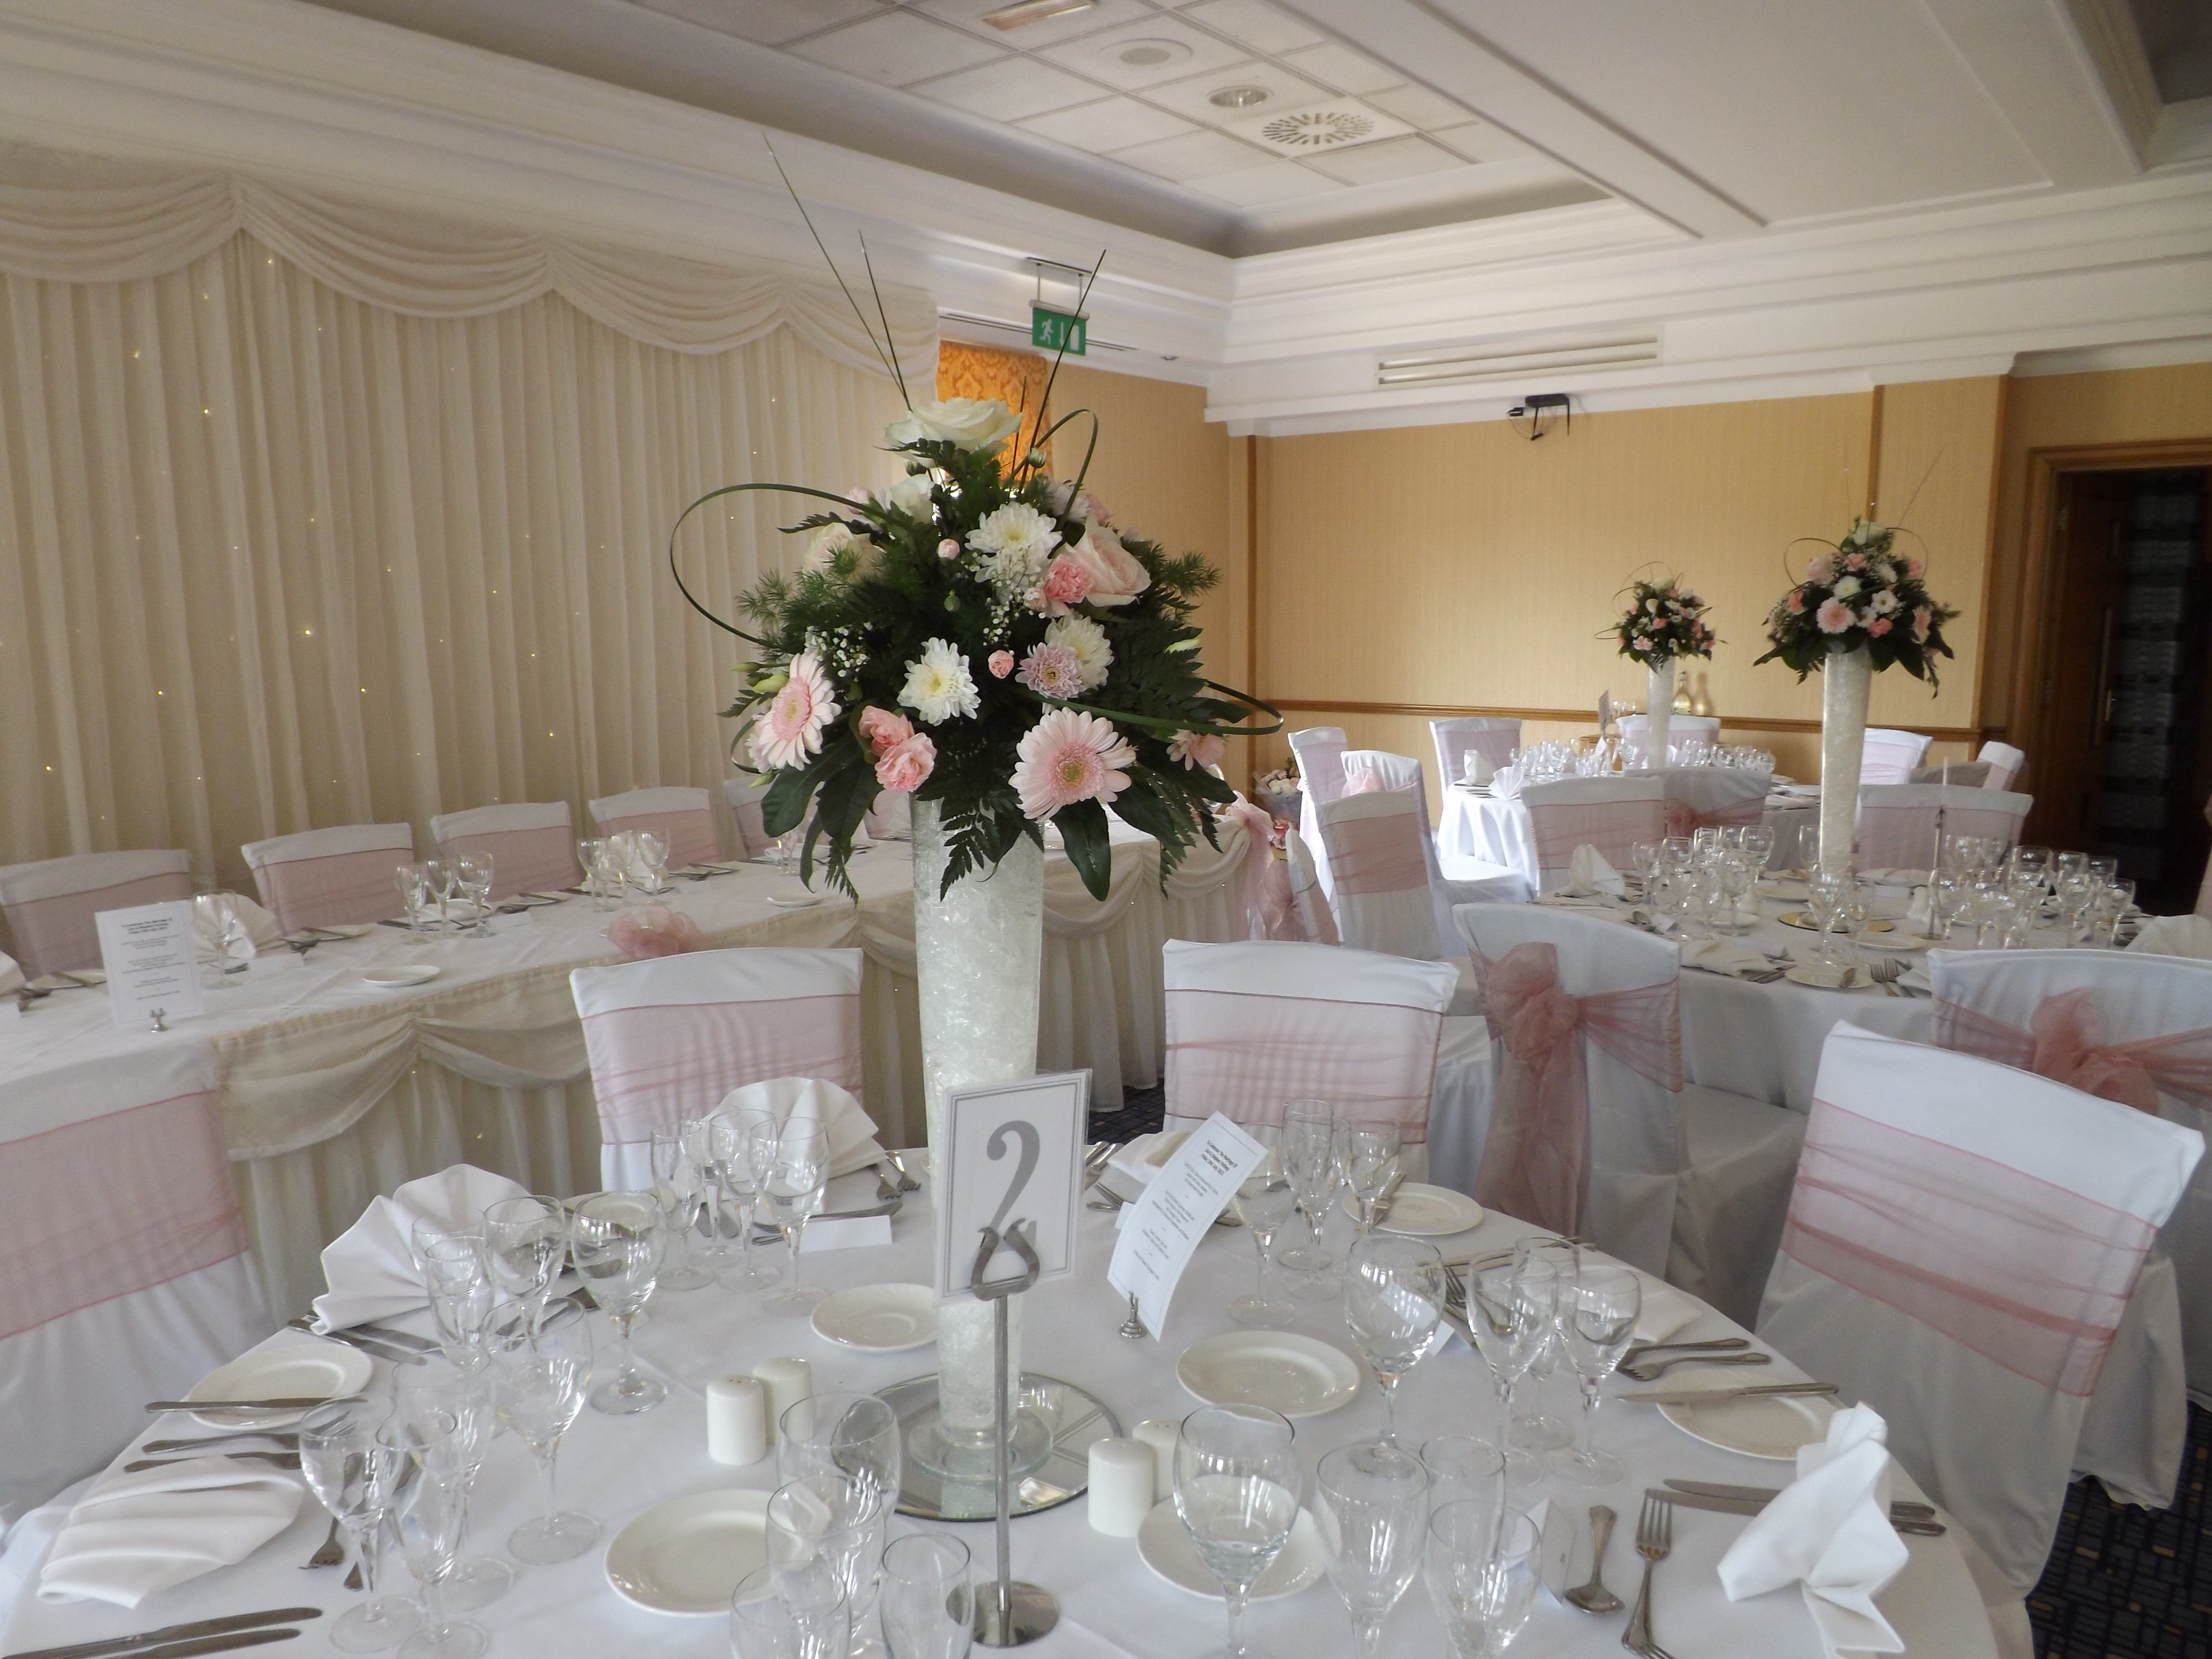 Star light back drop and blush pink chair covers and sashes